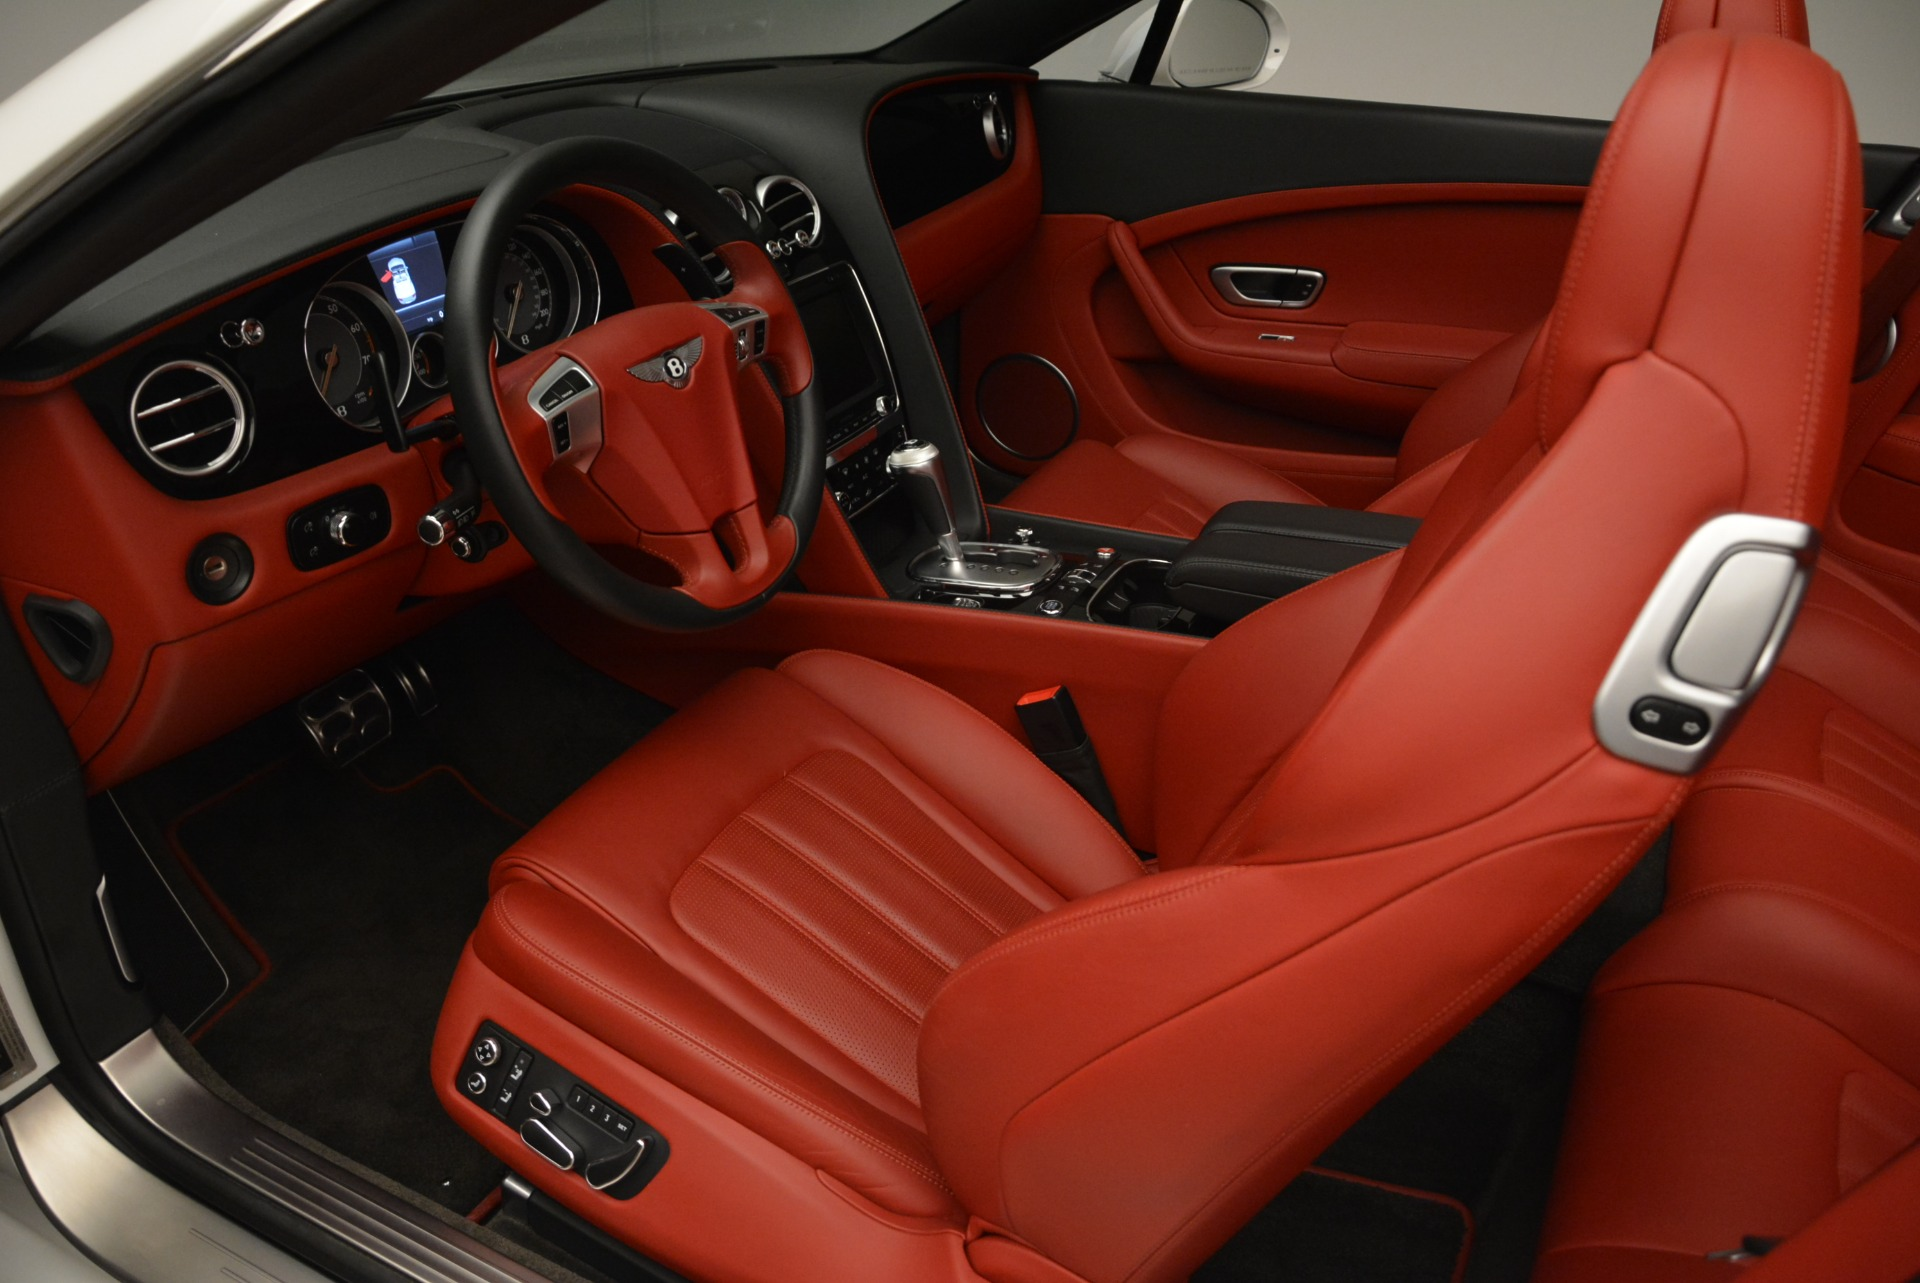 Used 2015 Bentley Continental GT V8 S For Sale In Westport, CT 2214_p20